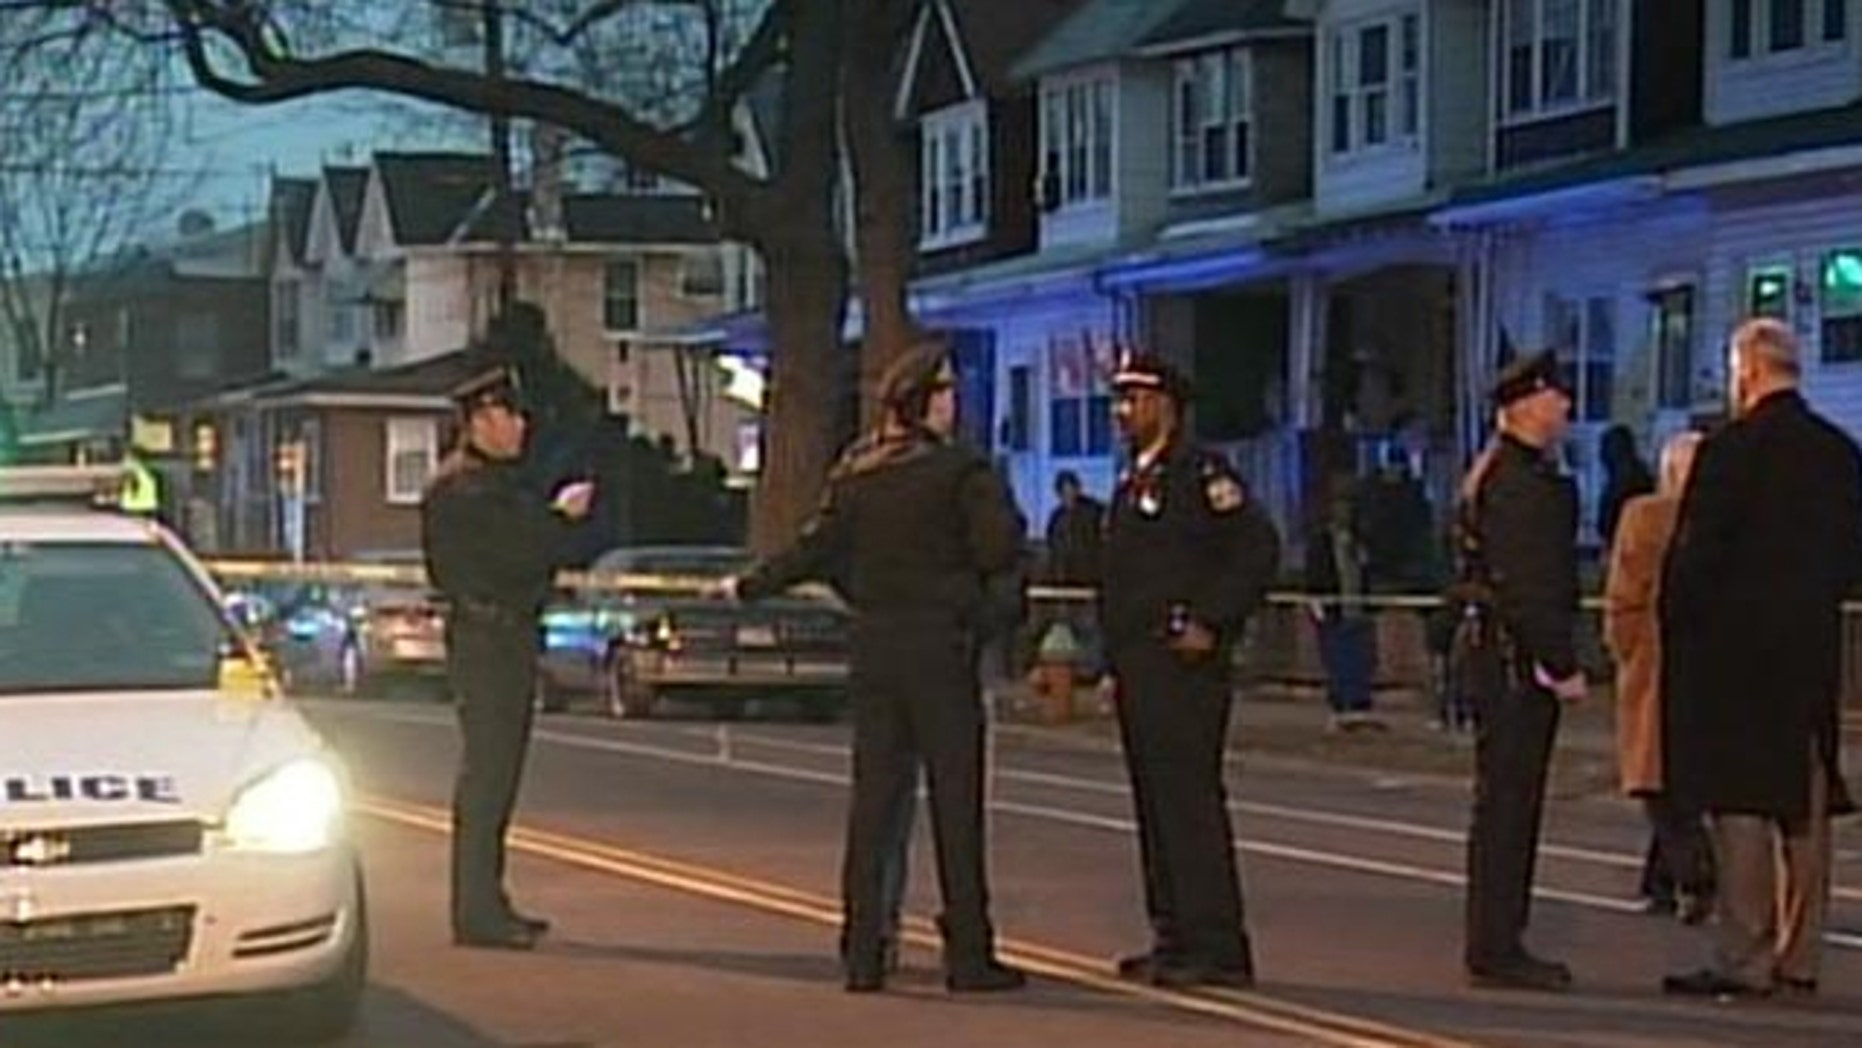 Police inspect the crime scene after a fatal Valentine's Day shooting.